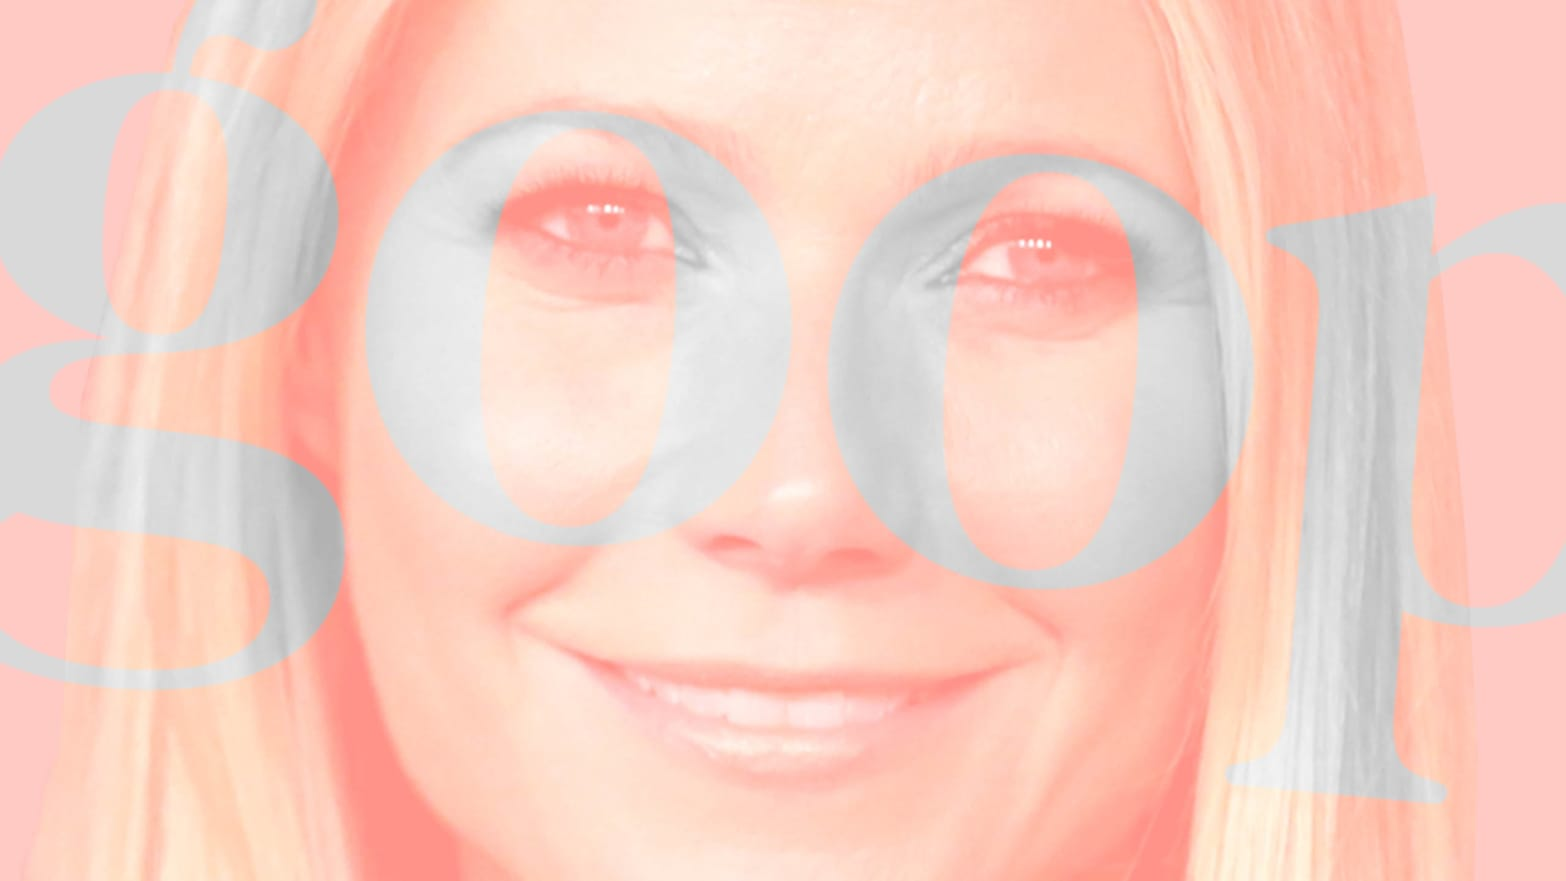 gwyneth paltrow in pink blurred and haze behind light blue pastel goop imprint netflix show timothy caulfield twitter pseudoscience